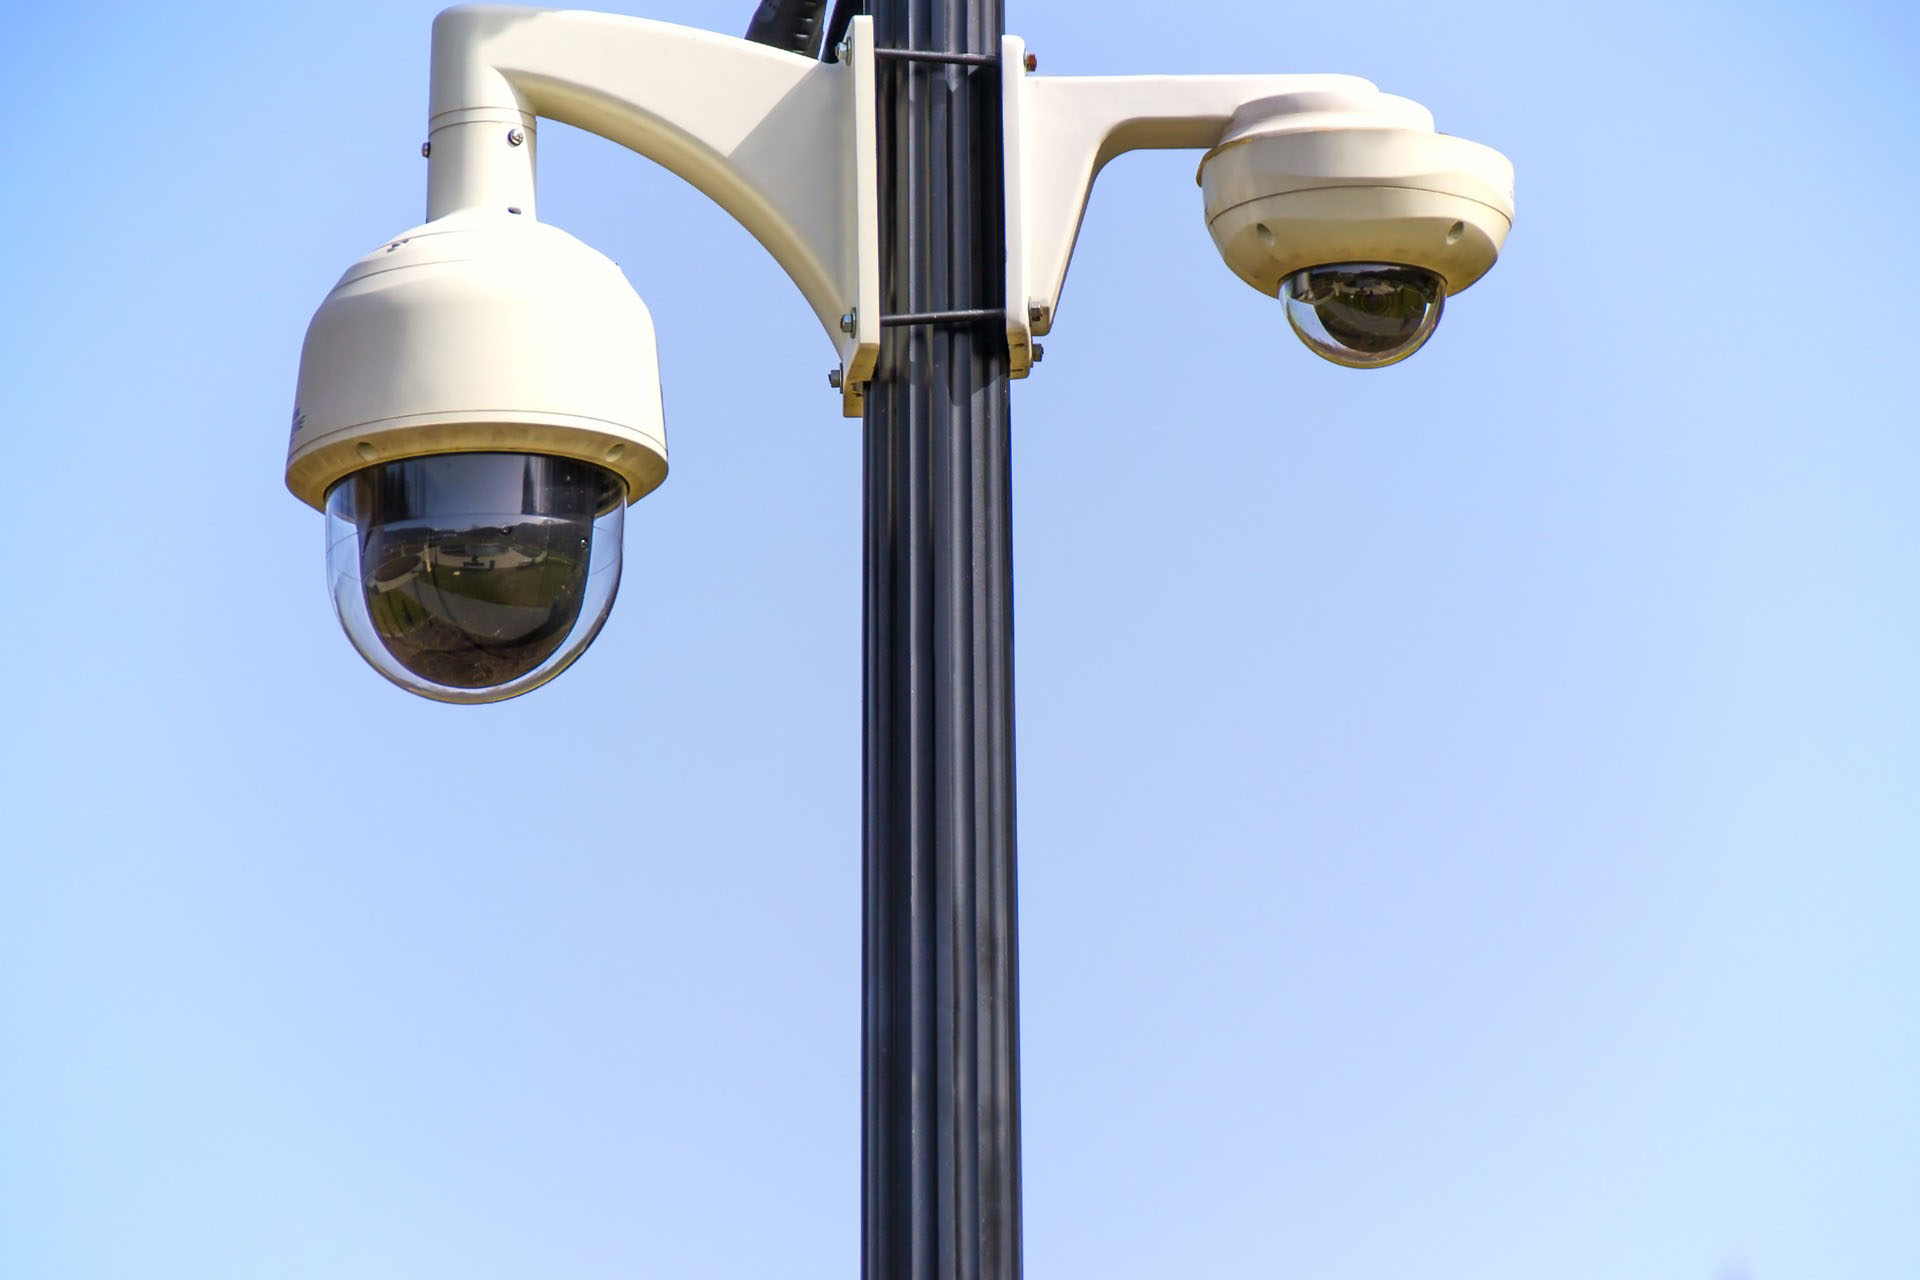 Commercial security camera installation service in Beaumont